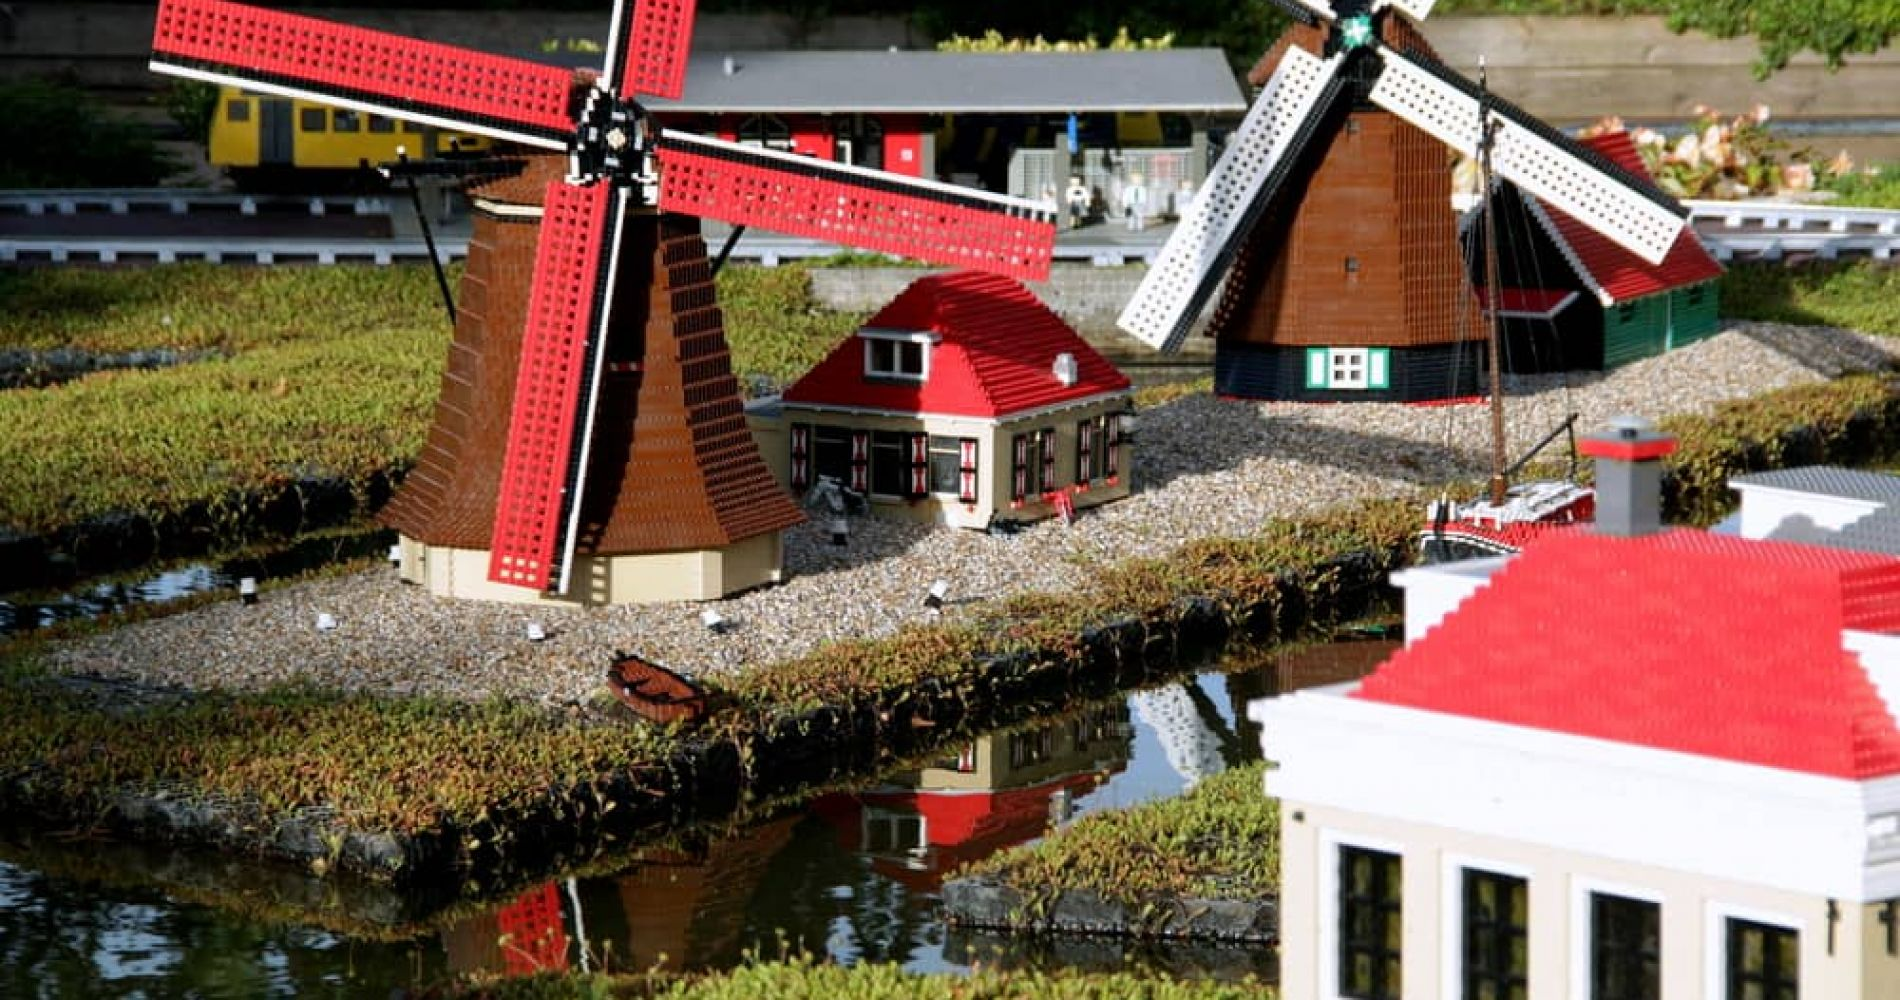 LEGOLAND Discovery Center Philadelphia and other attractions for Two